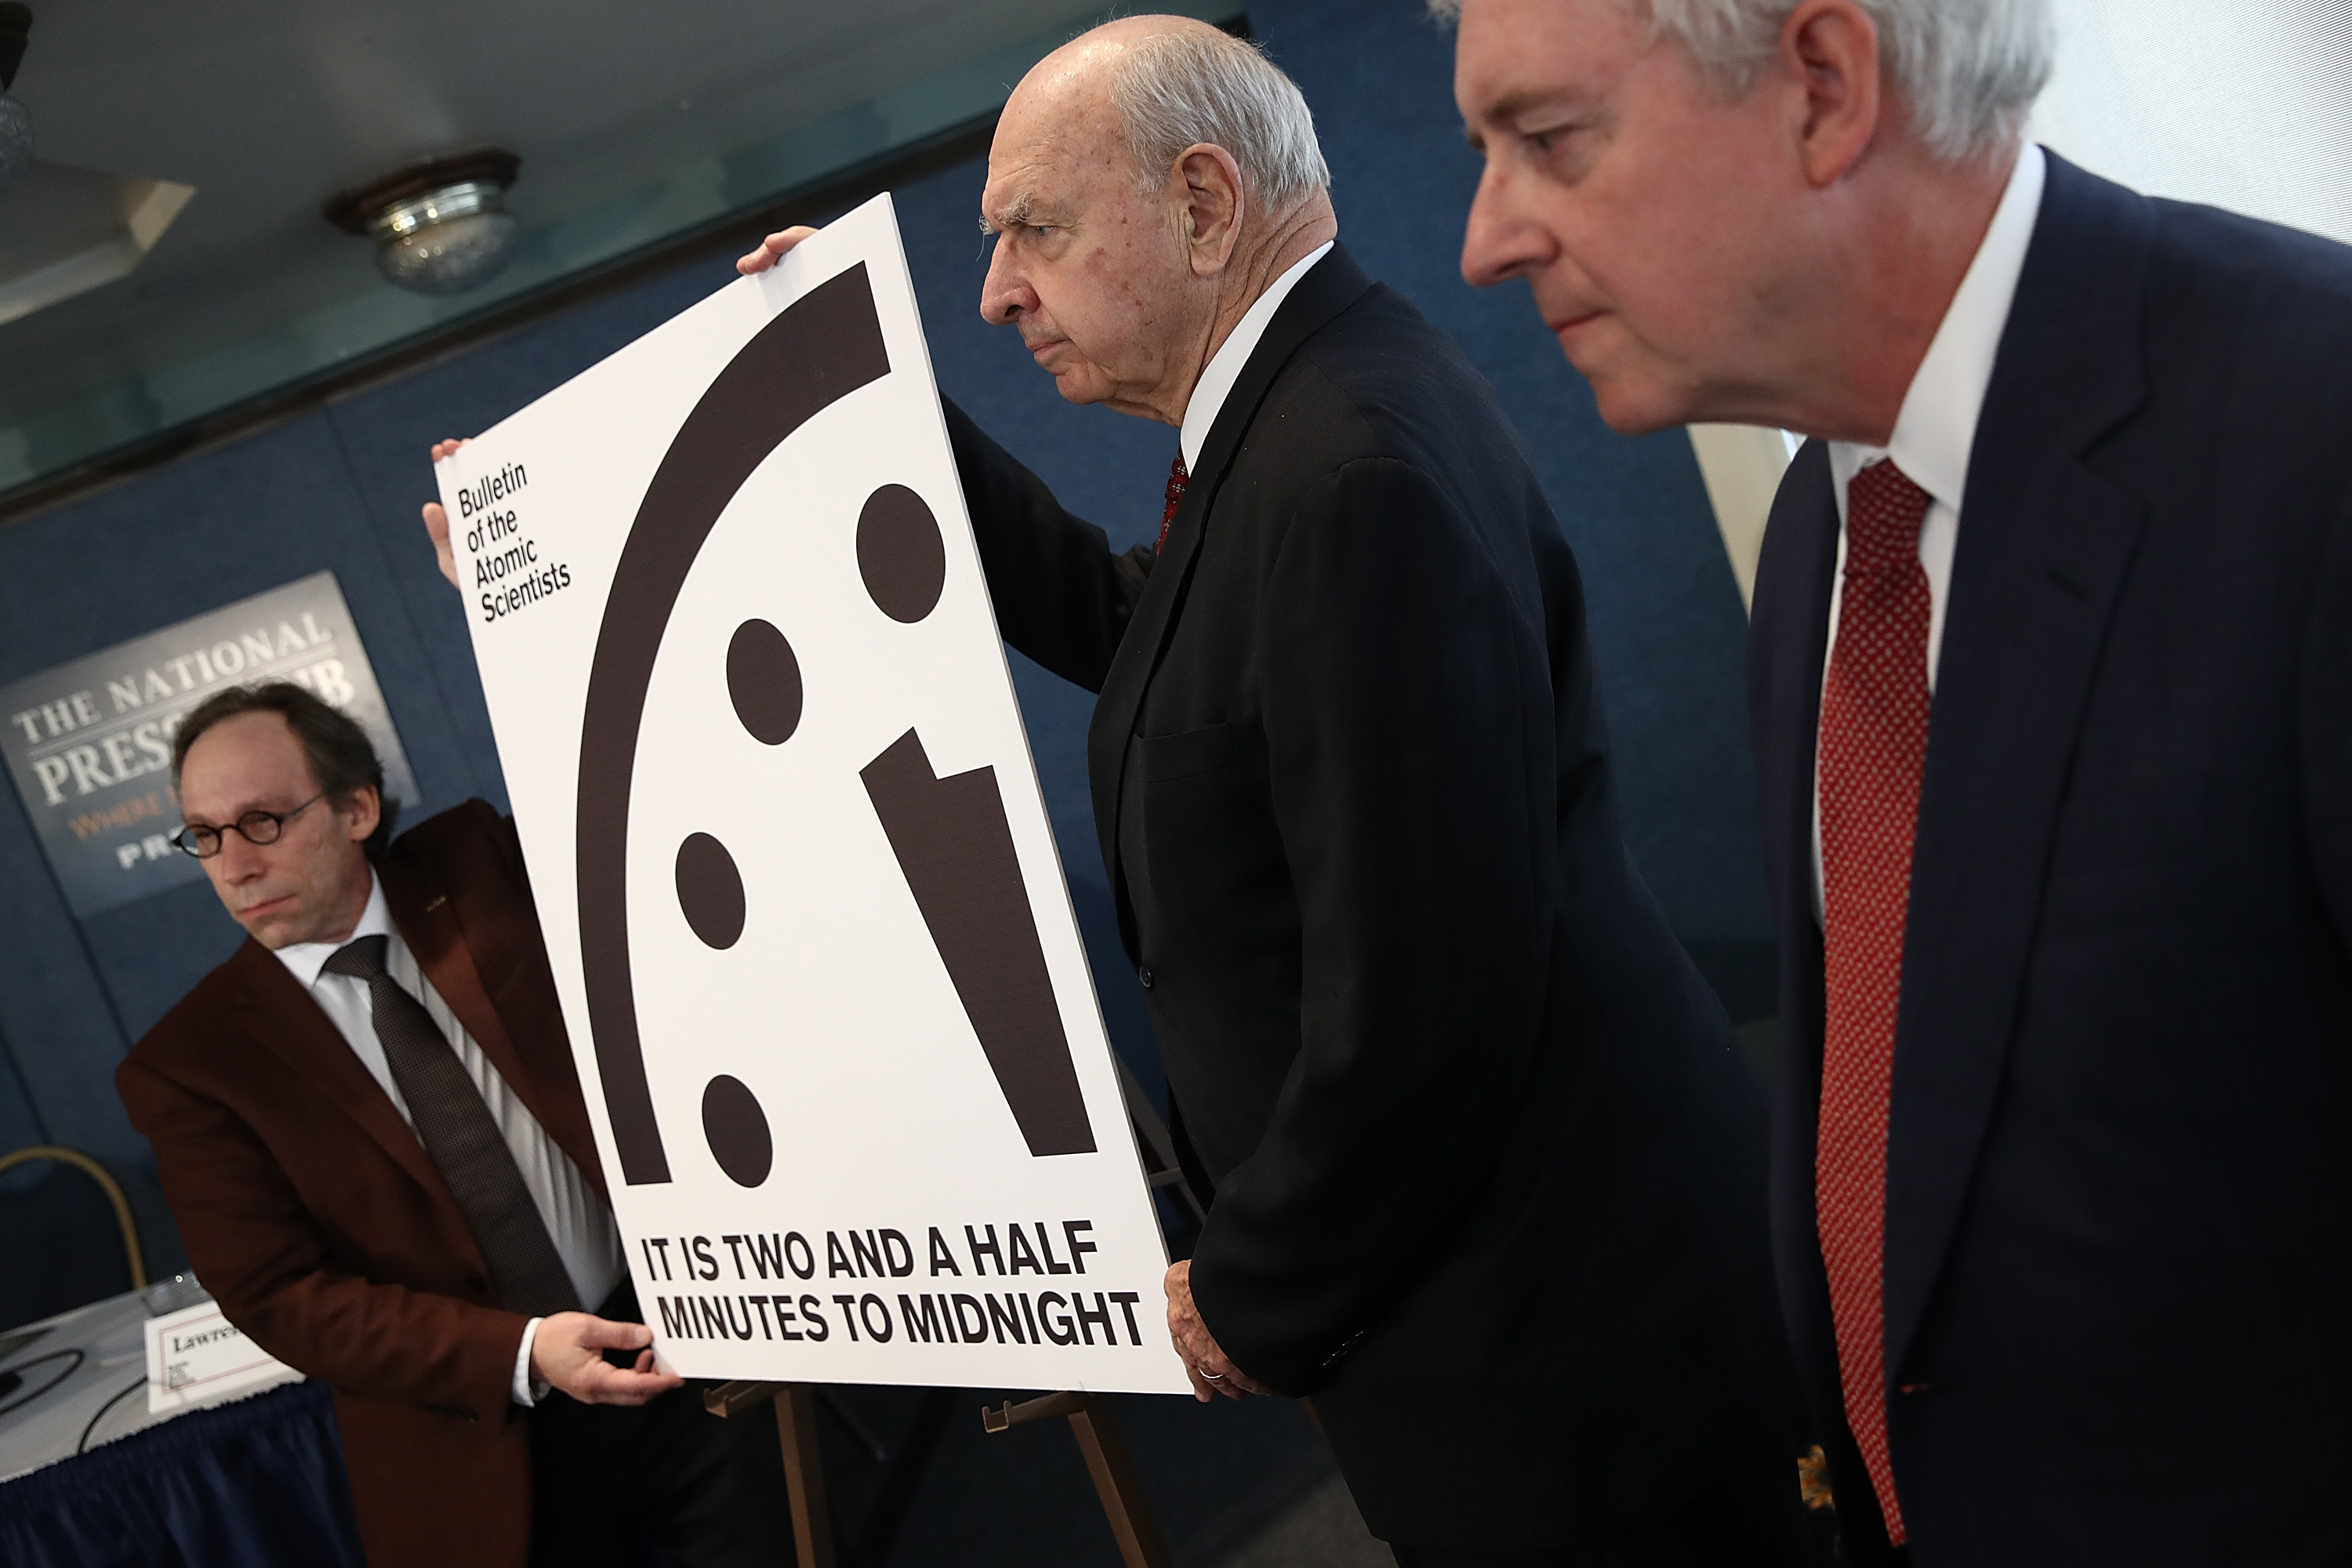 moving the Doomsday clock